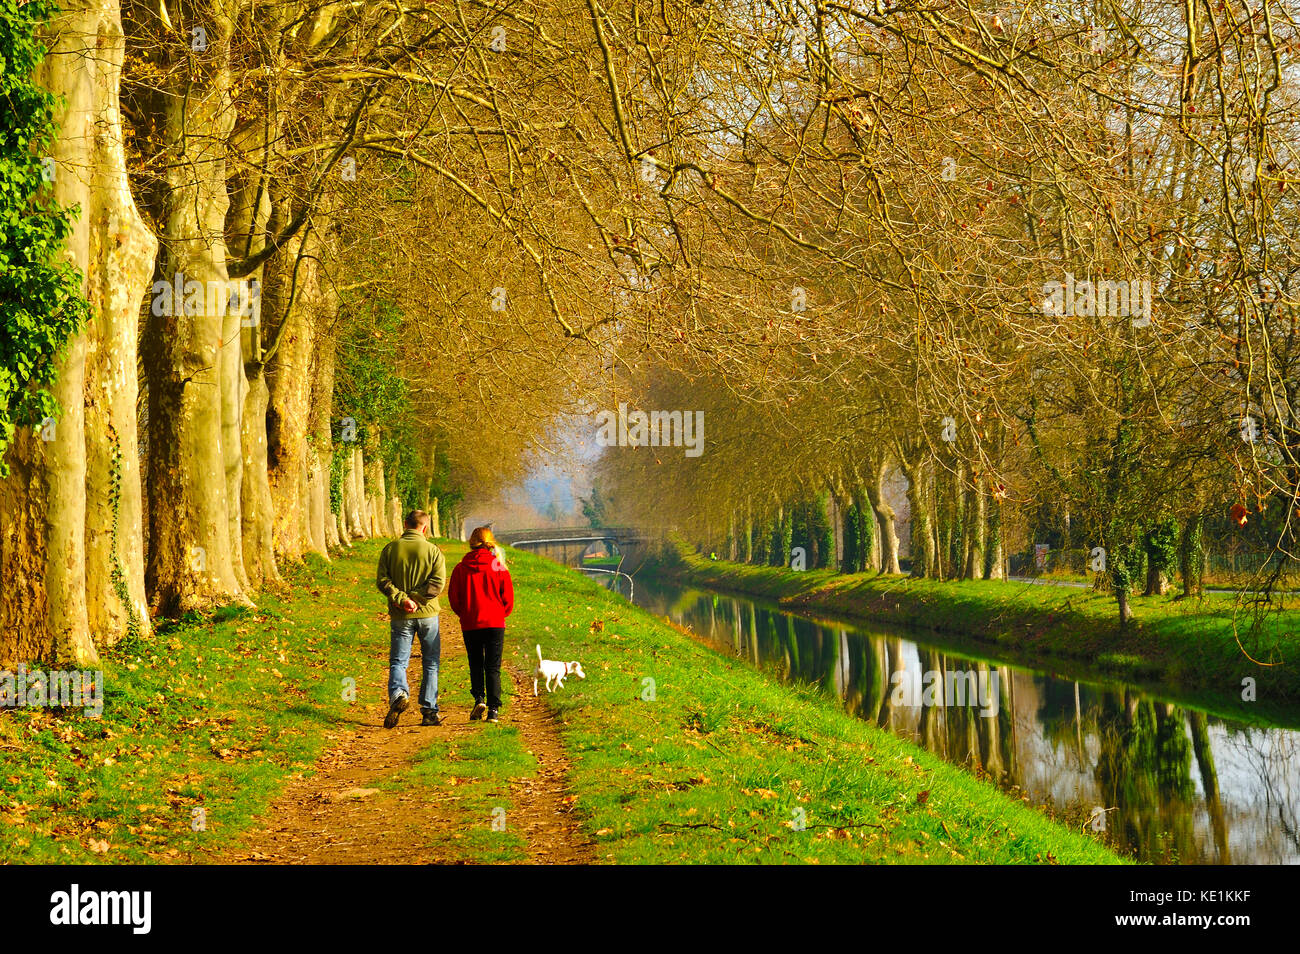 couple walking dog on towpath, Lalinde Canal at Lalinde, Dordogne Department, Aquitaine, France - Stock Image